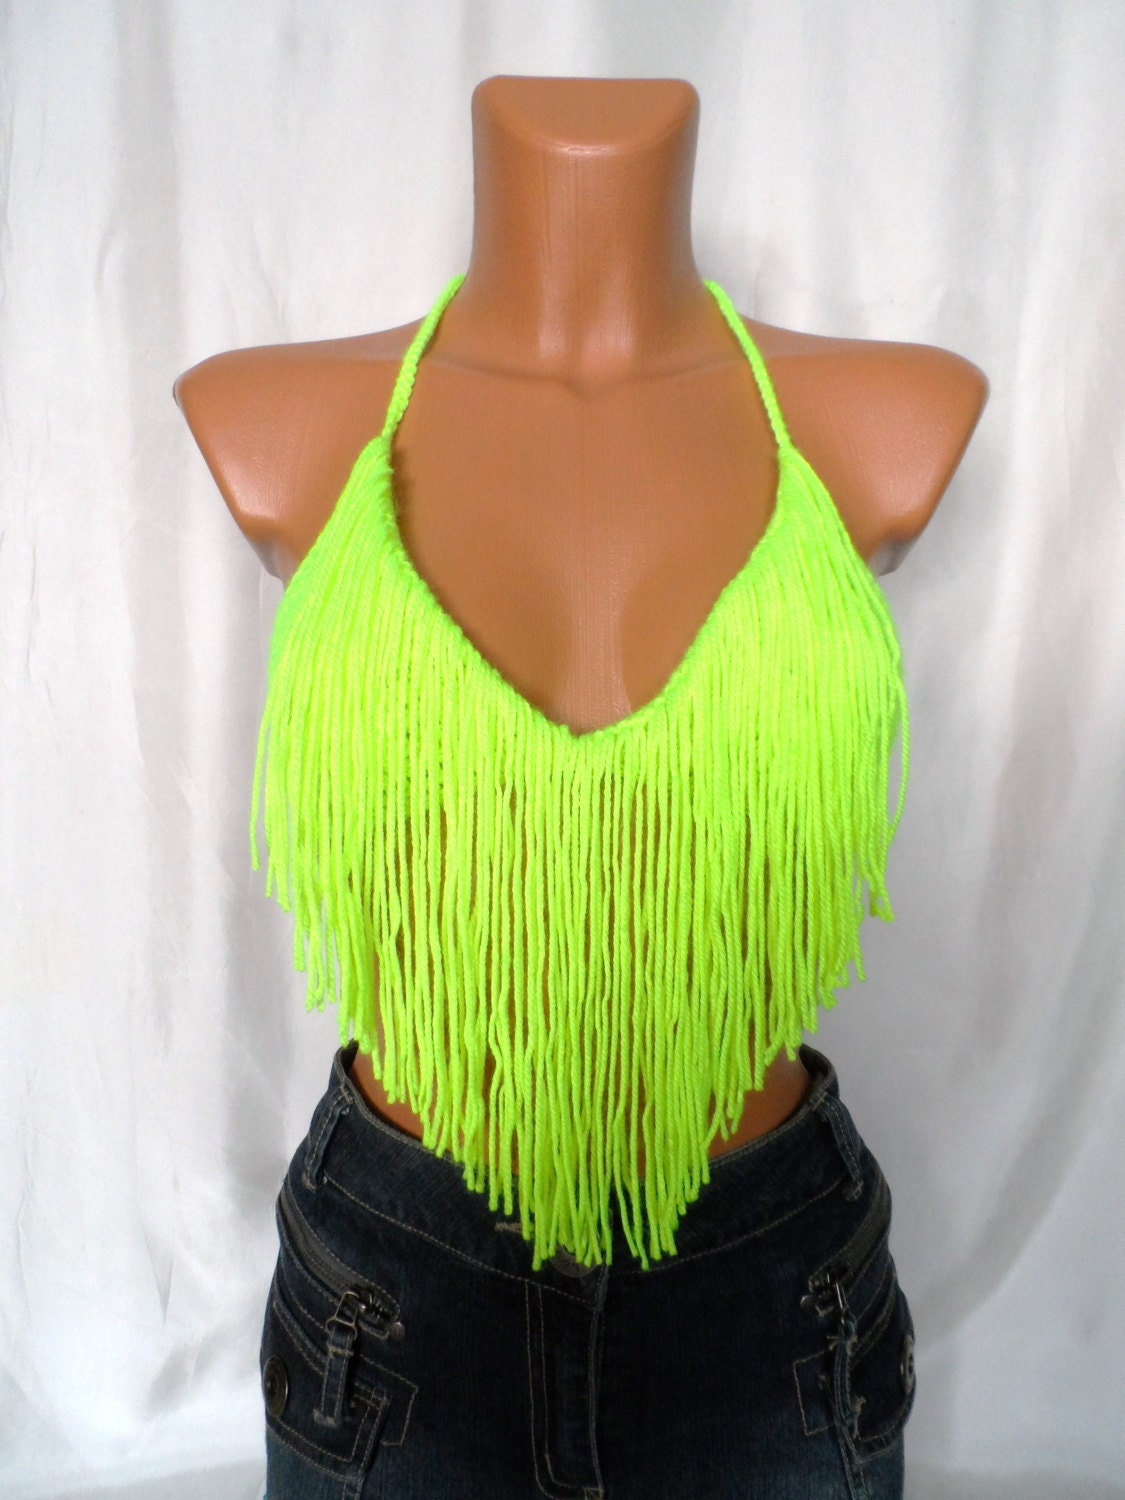 Summer Festival Top Fringes Neon Yellow Green Top Color Top